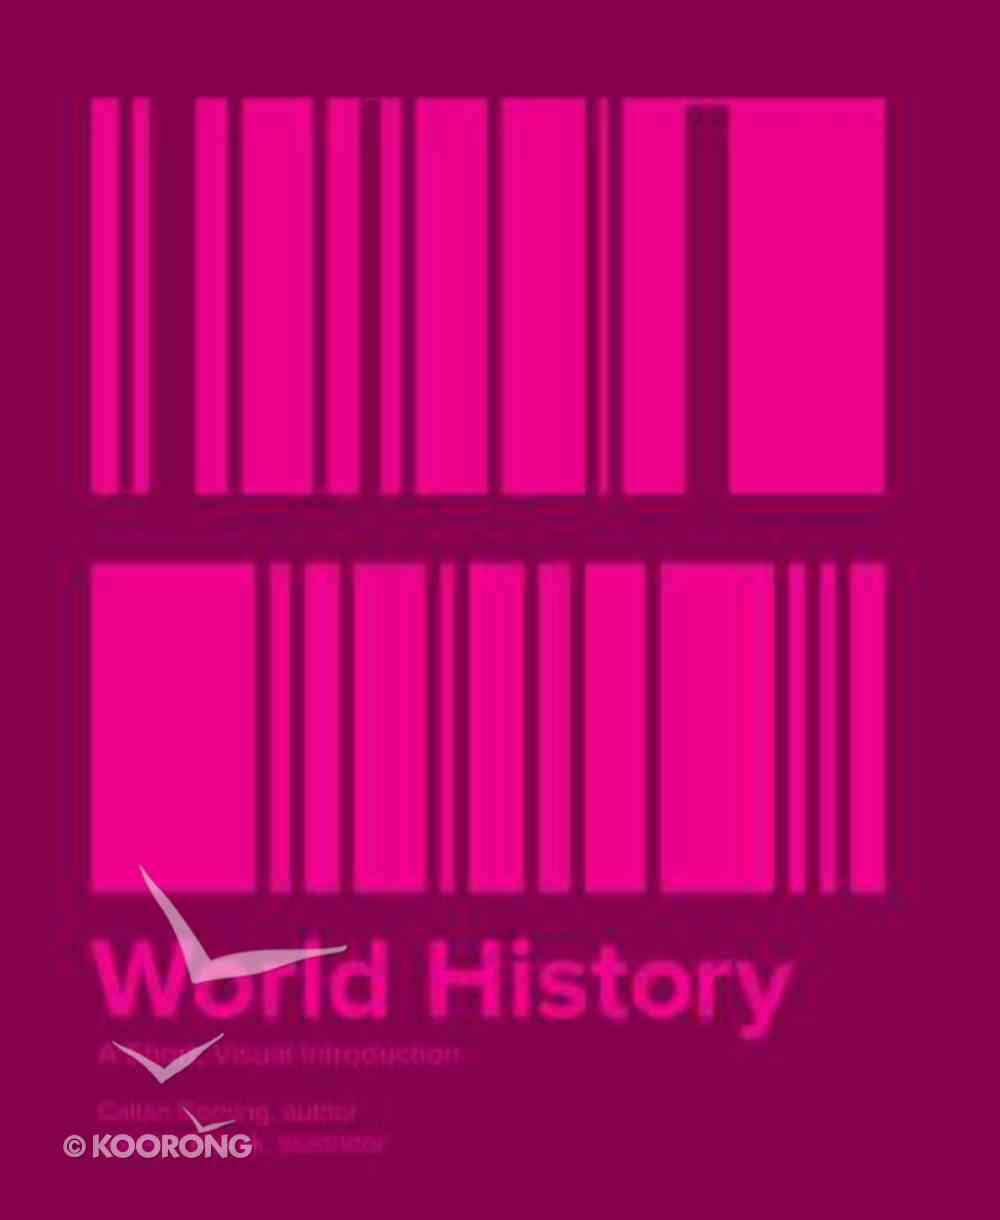 World History: A Short, Visual Introduction Paperback